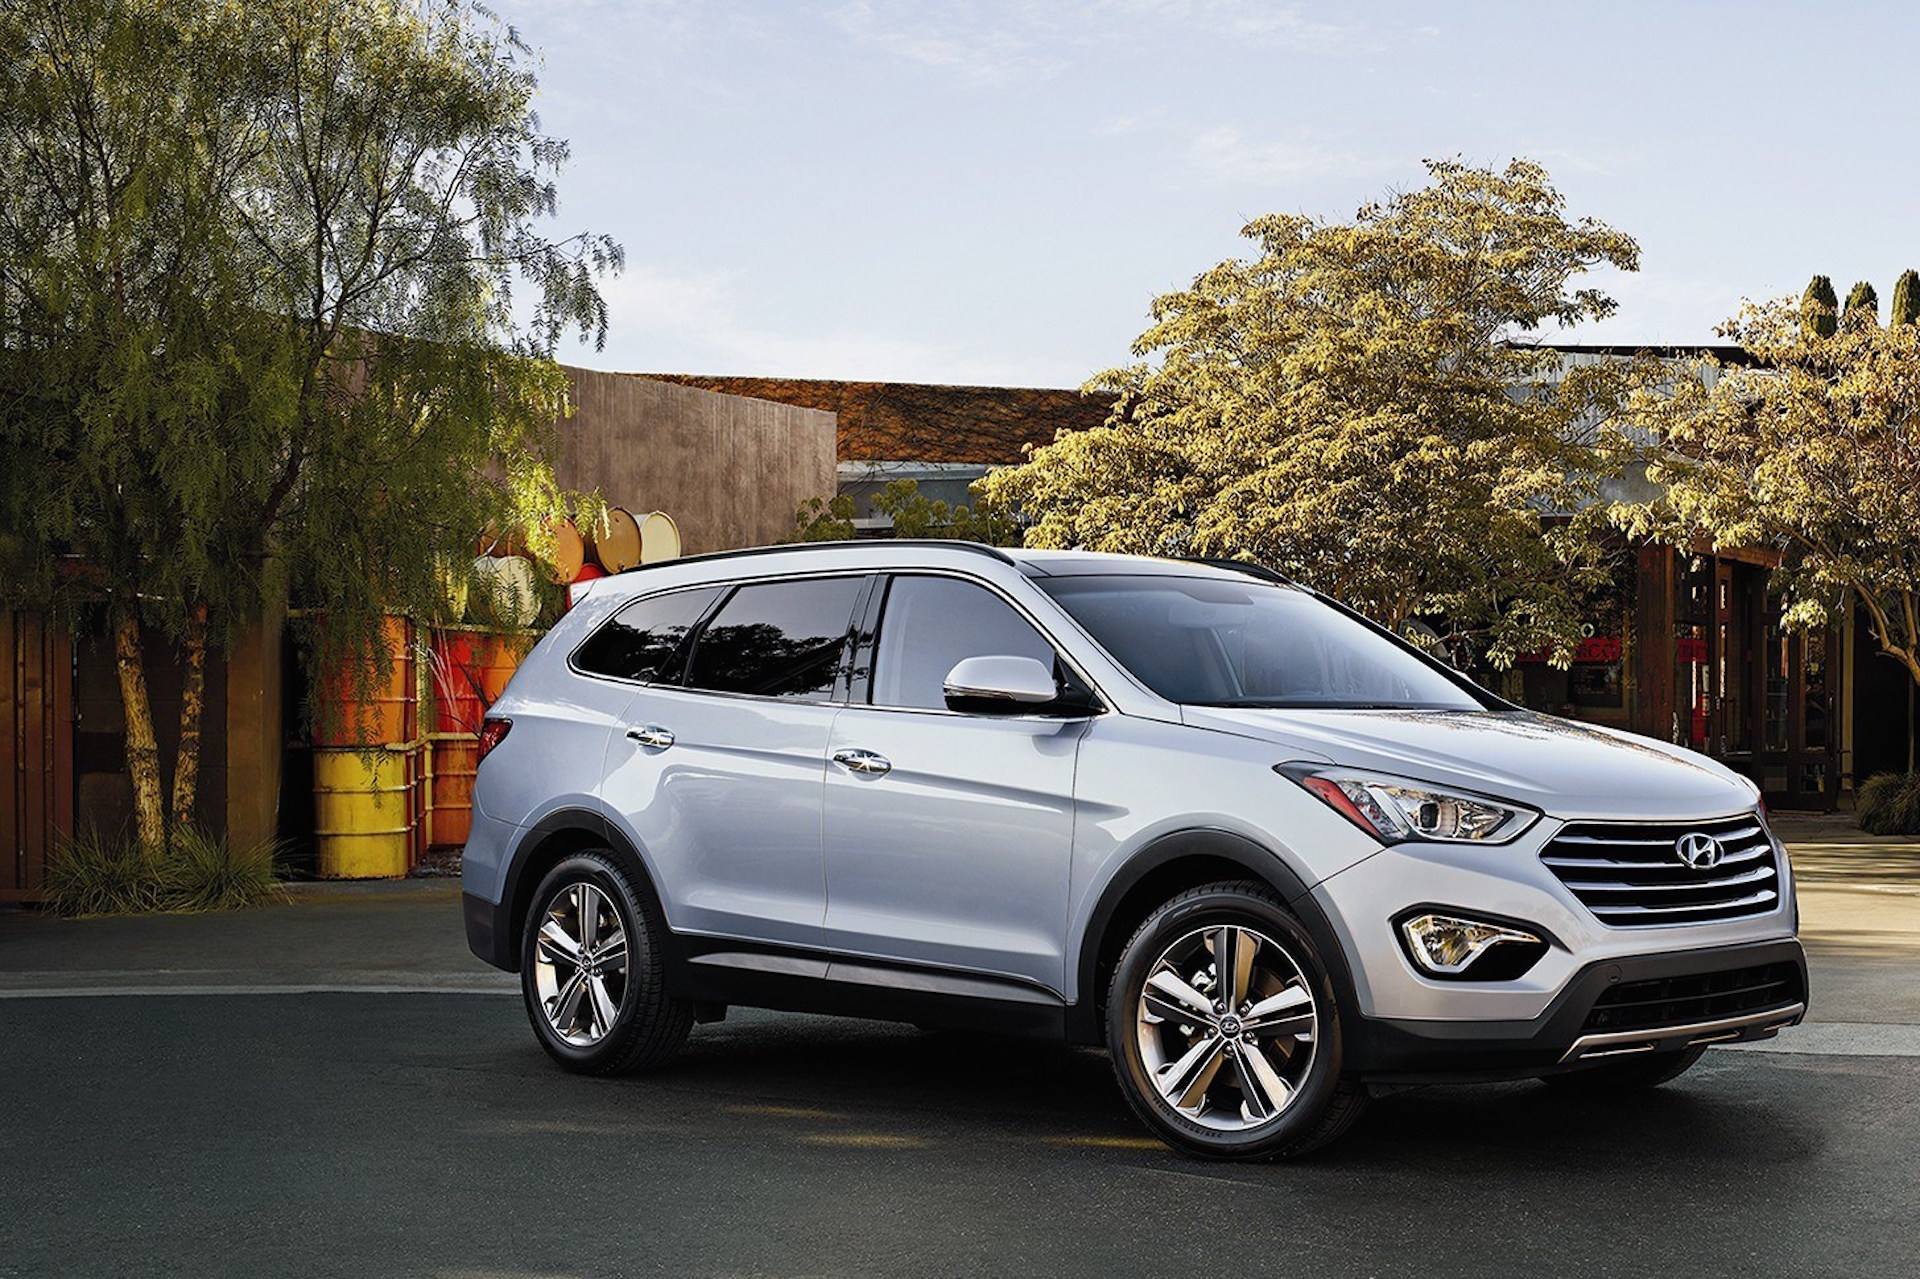 2016 Hyundai Santa Fe Review, Ratings, Specs, Prices, and ...